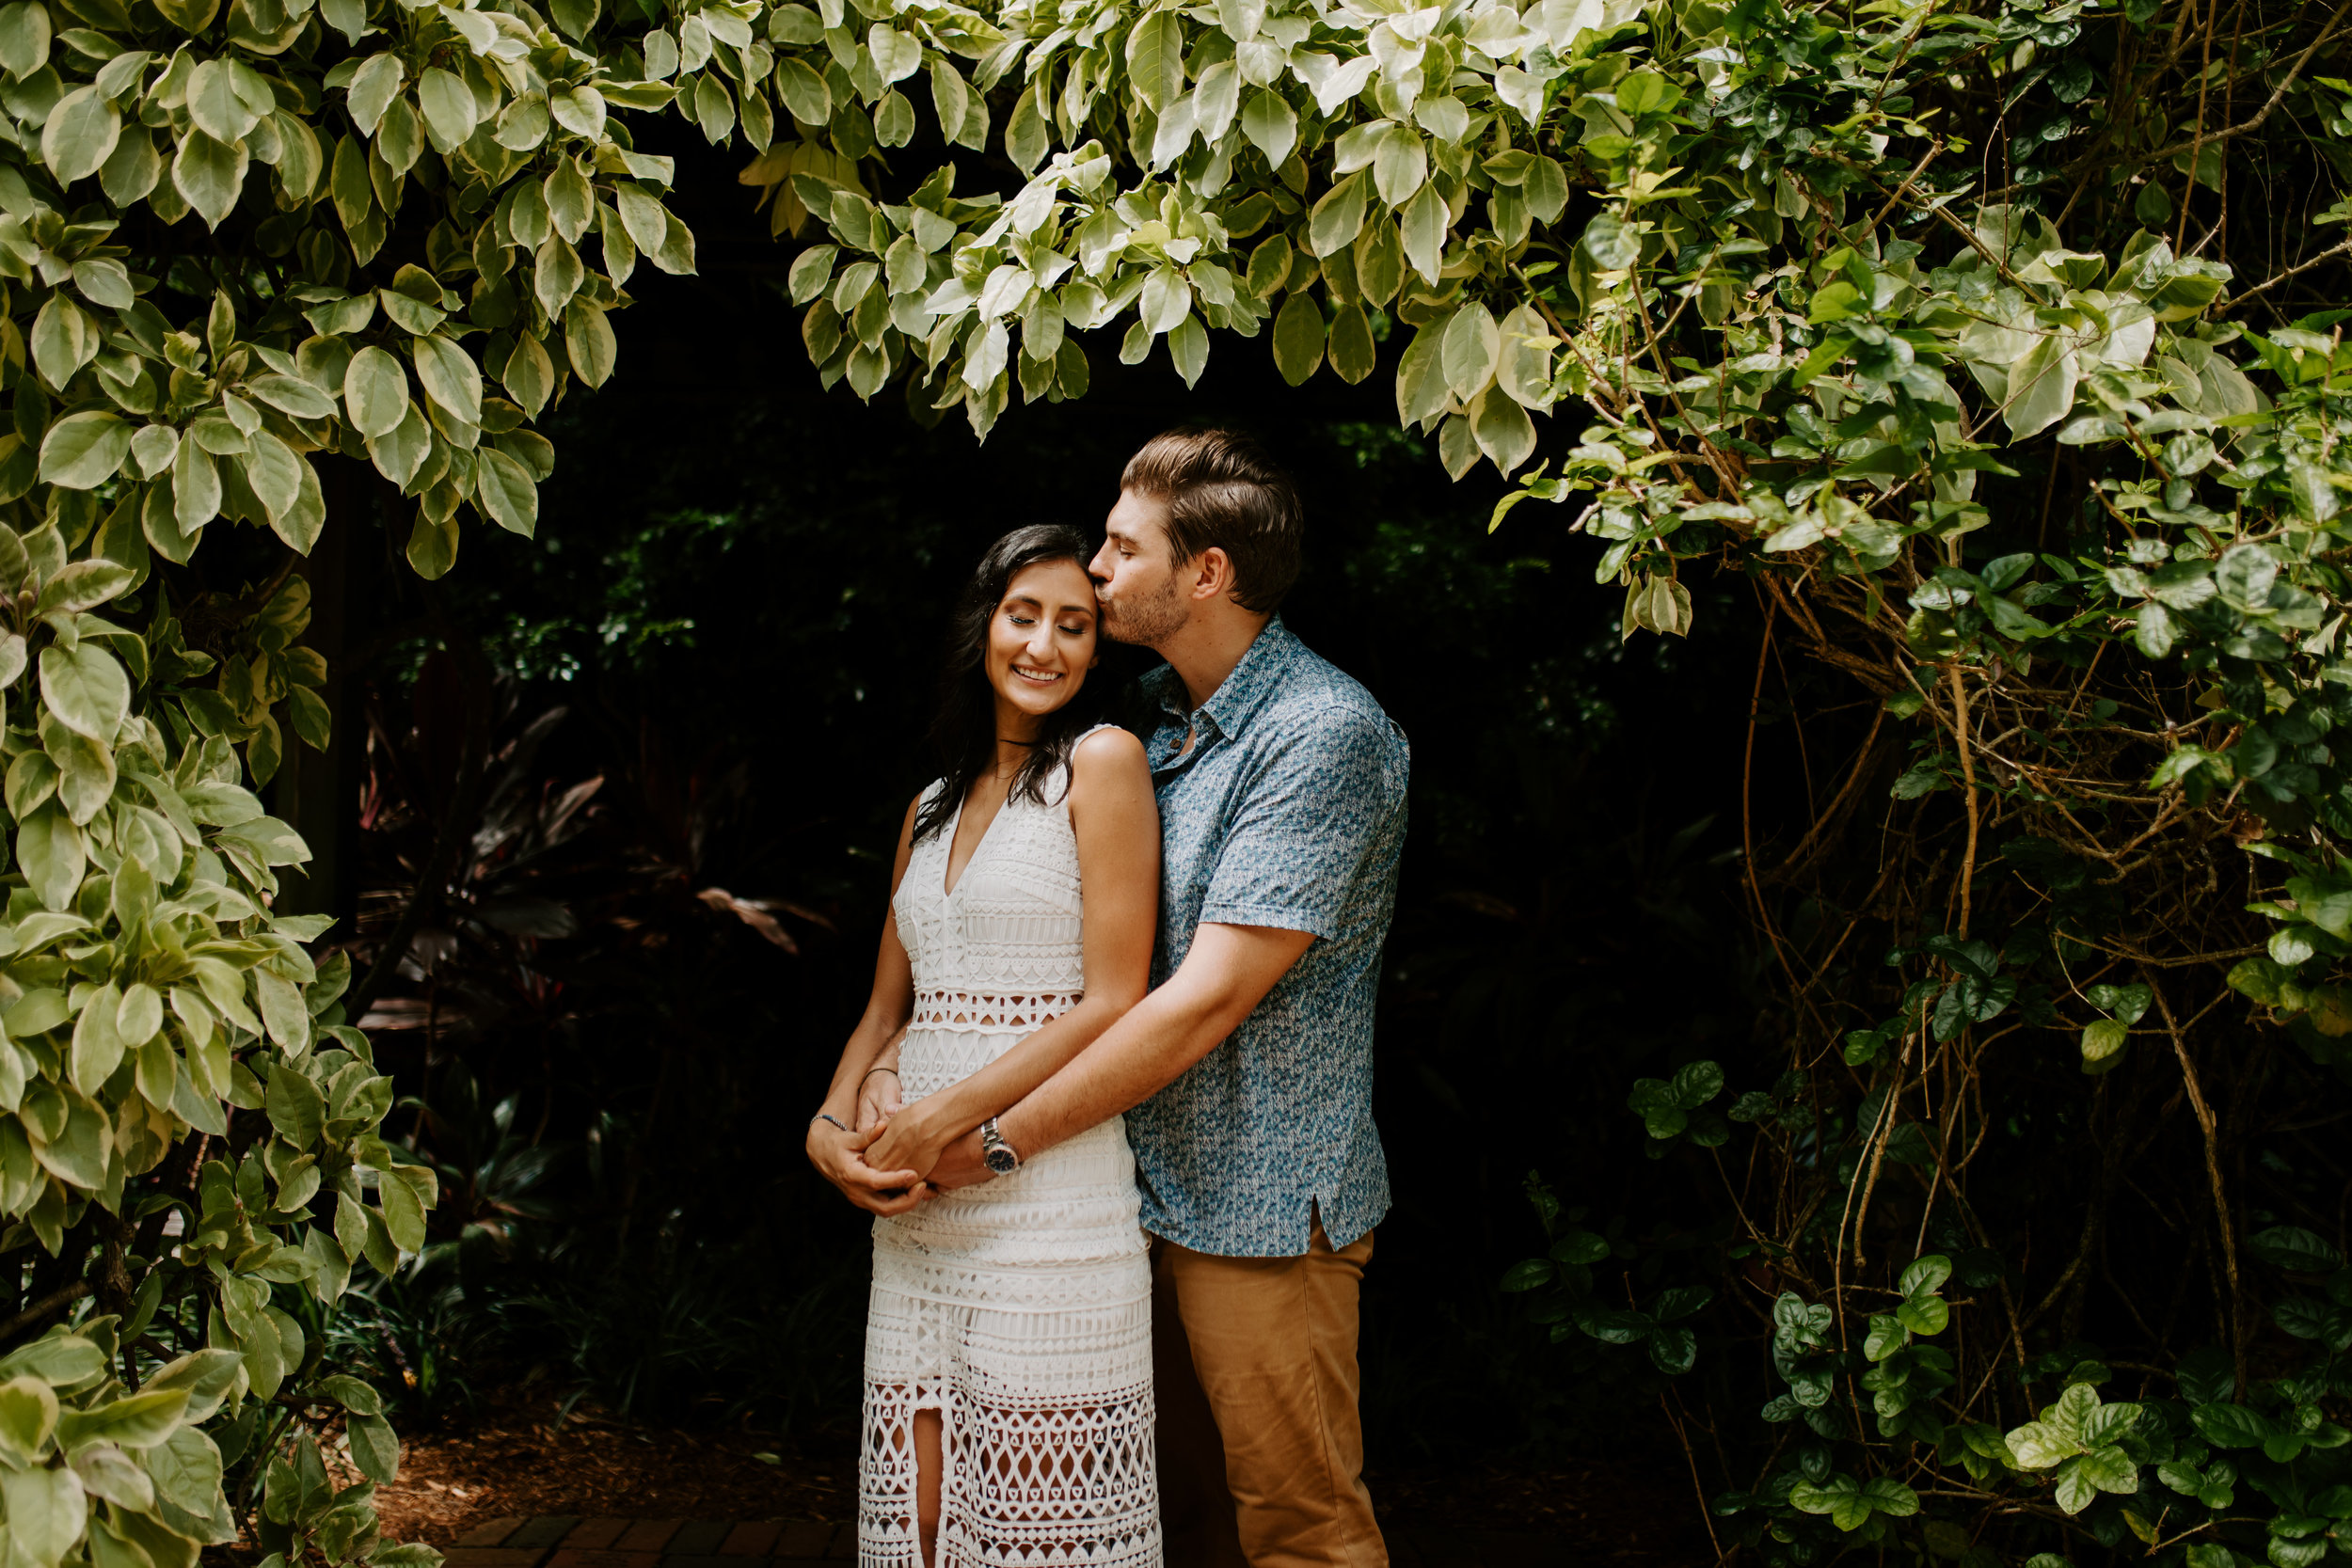 Sunken_Gardens-St_Pete-Allie_+_Eric-Engagement-Native_Expressions-222.jpg